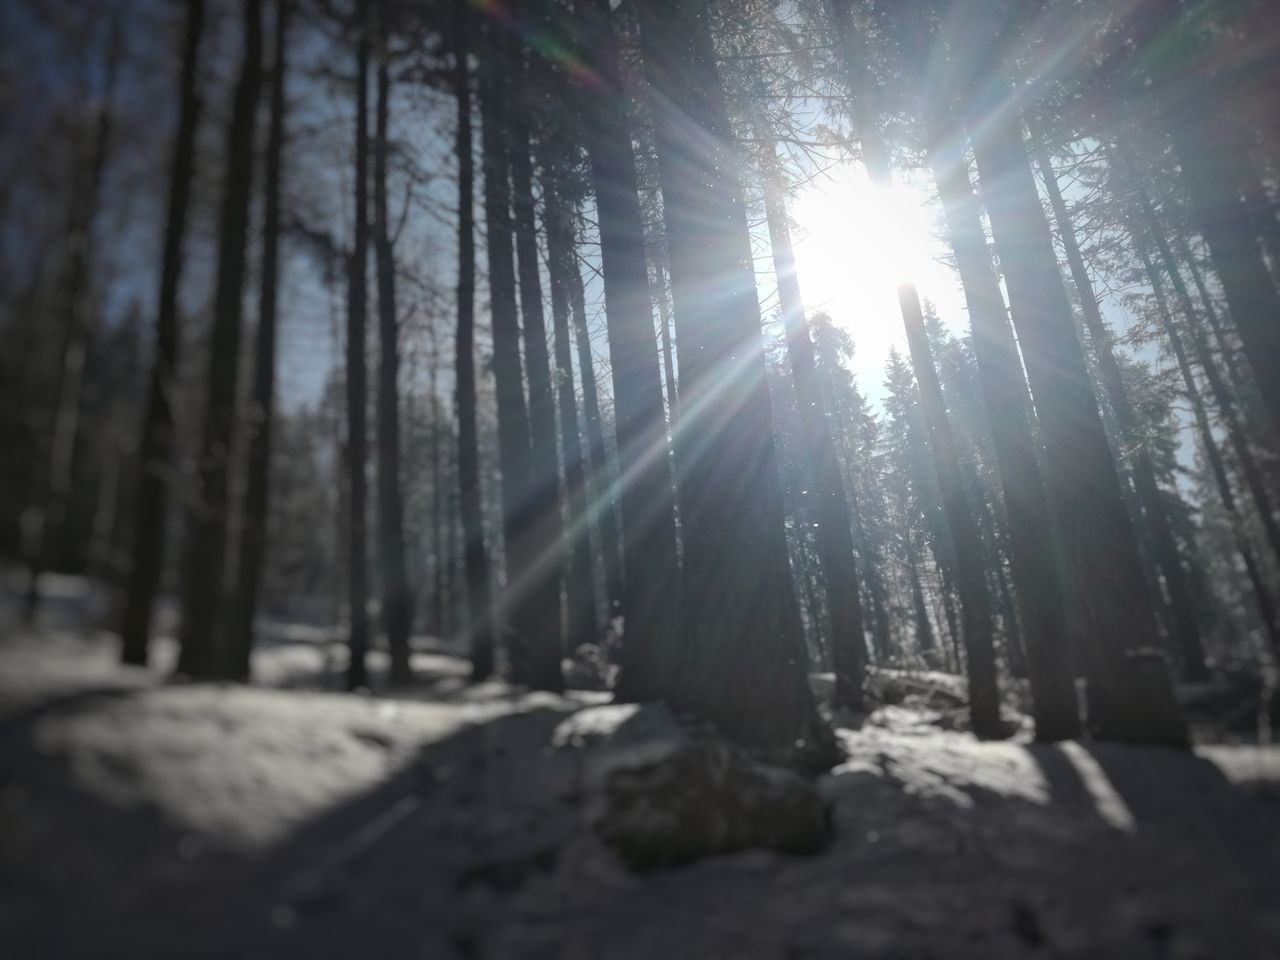 nature, tree, tranquility, beauty in nature, sunbeam, sunlight, forest, no people, tranquil scene, low angle view, day, outdoors, sun, growth, tree trunk, scenics, snow, winter, landscape, sky